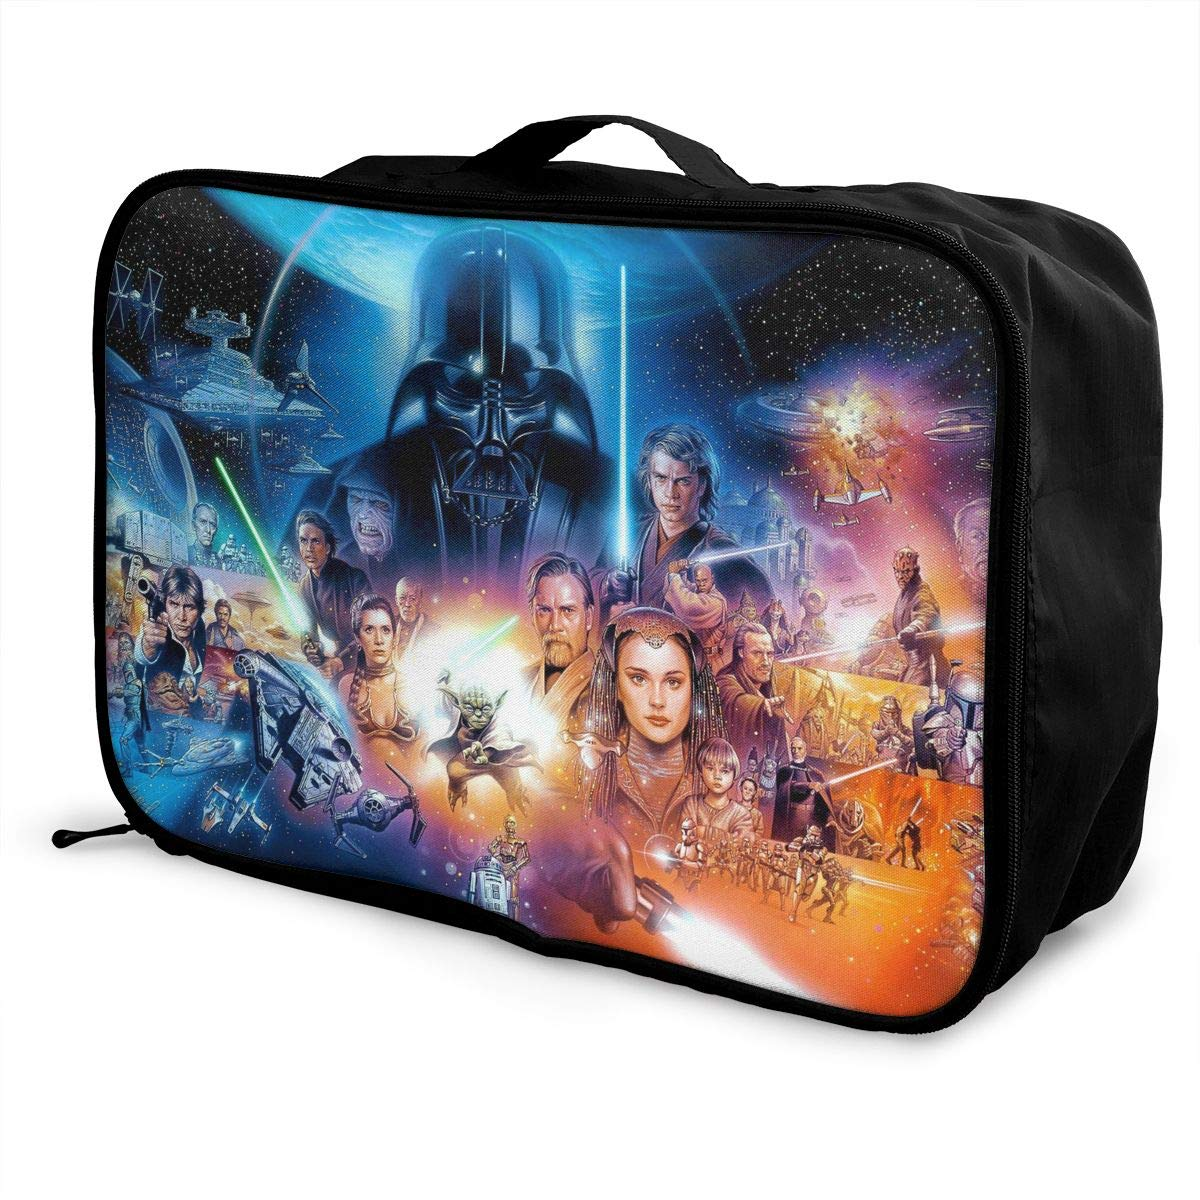 BOKAIKAI1306 Cool S-Star Wars Unisex Adult Fashion Lightweight Large Capacity Portable Large Travel Duffel Bag Mens Women Luggage Bag 3D Printed Custom Boarding Box